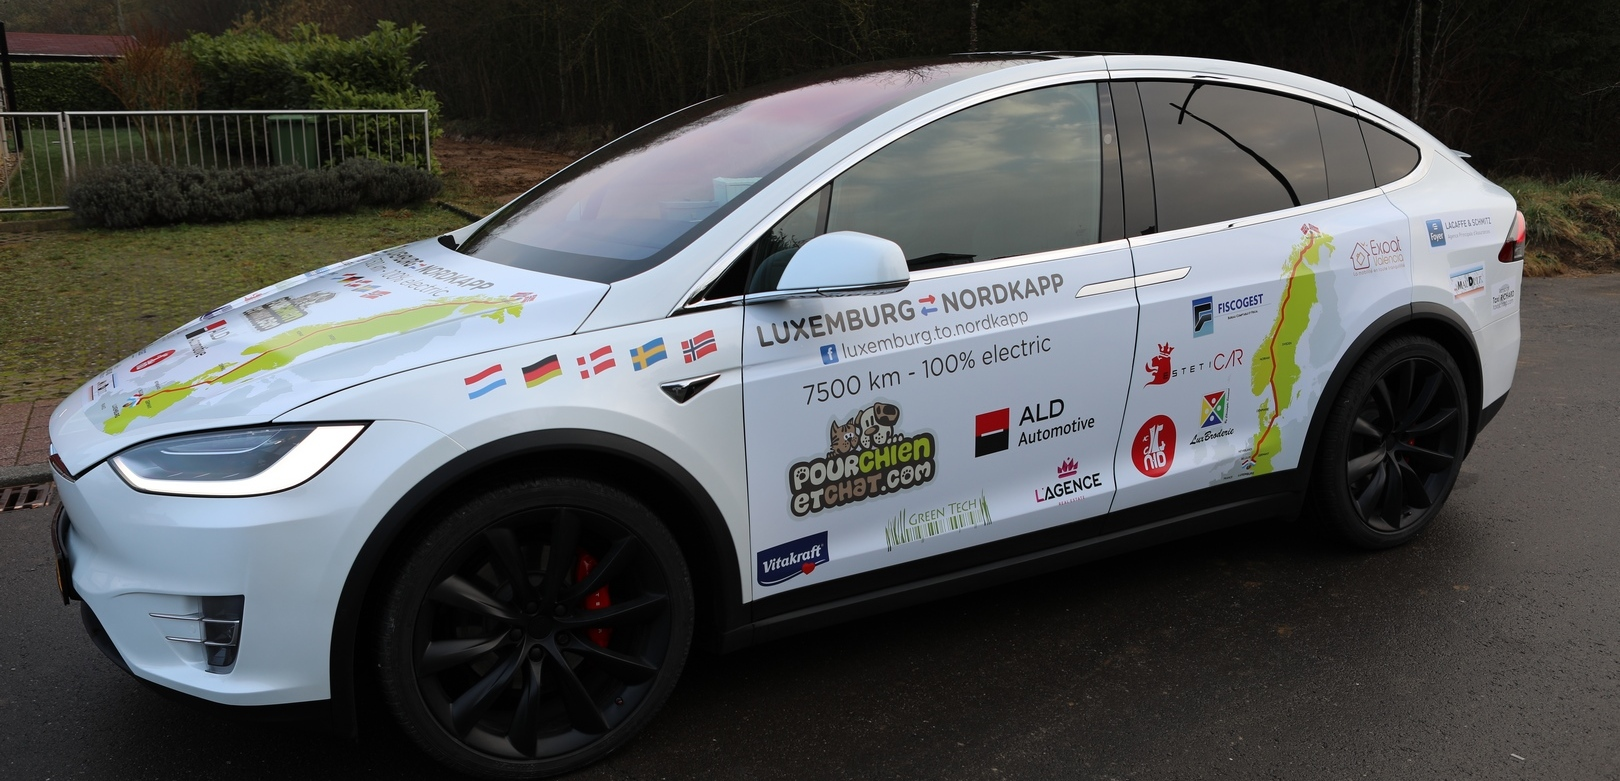 Luxembourg to Nordkapp with a Tesla Model X: Interview with Olivier Defoort